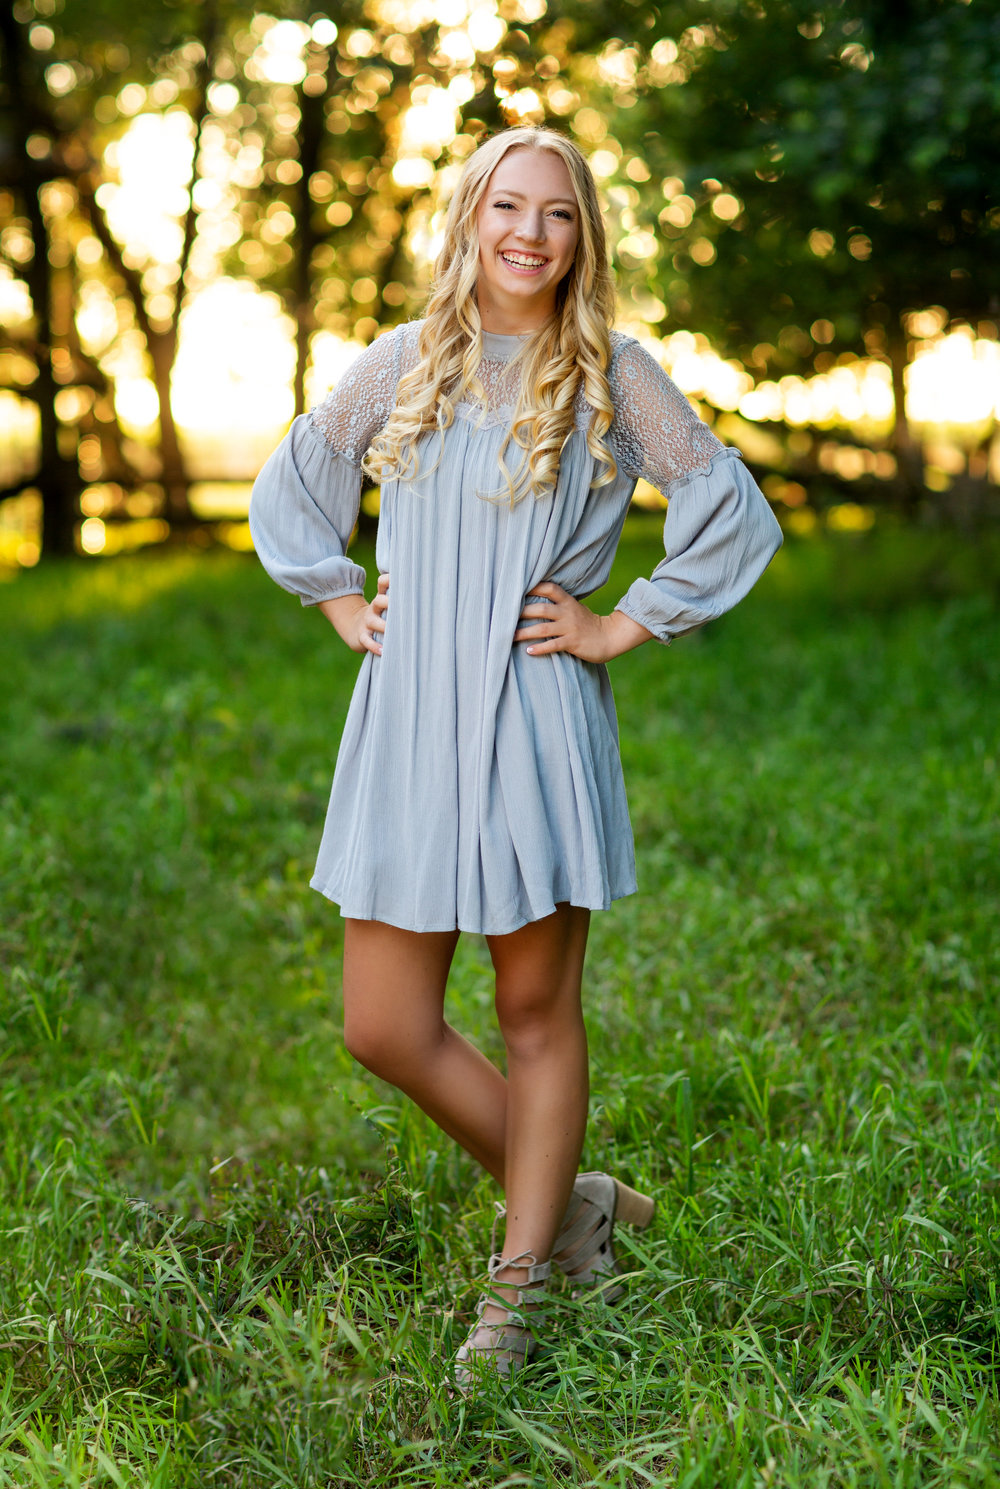 Senior Portrait Photographers in South Dakota